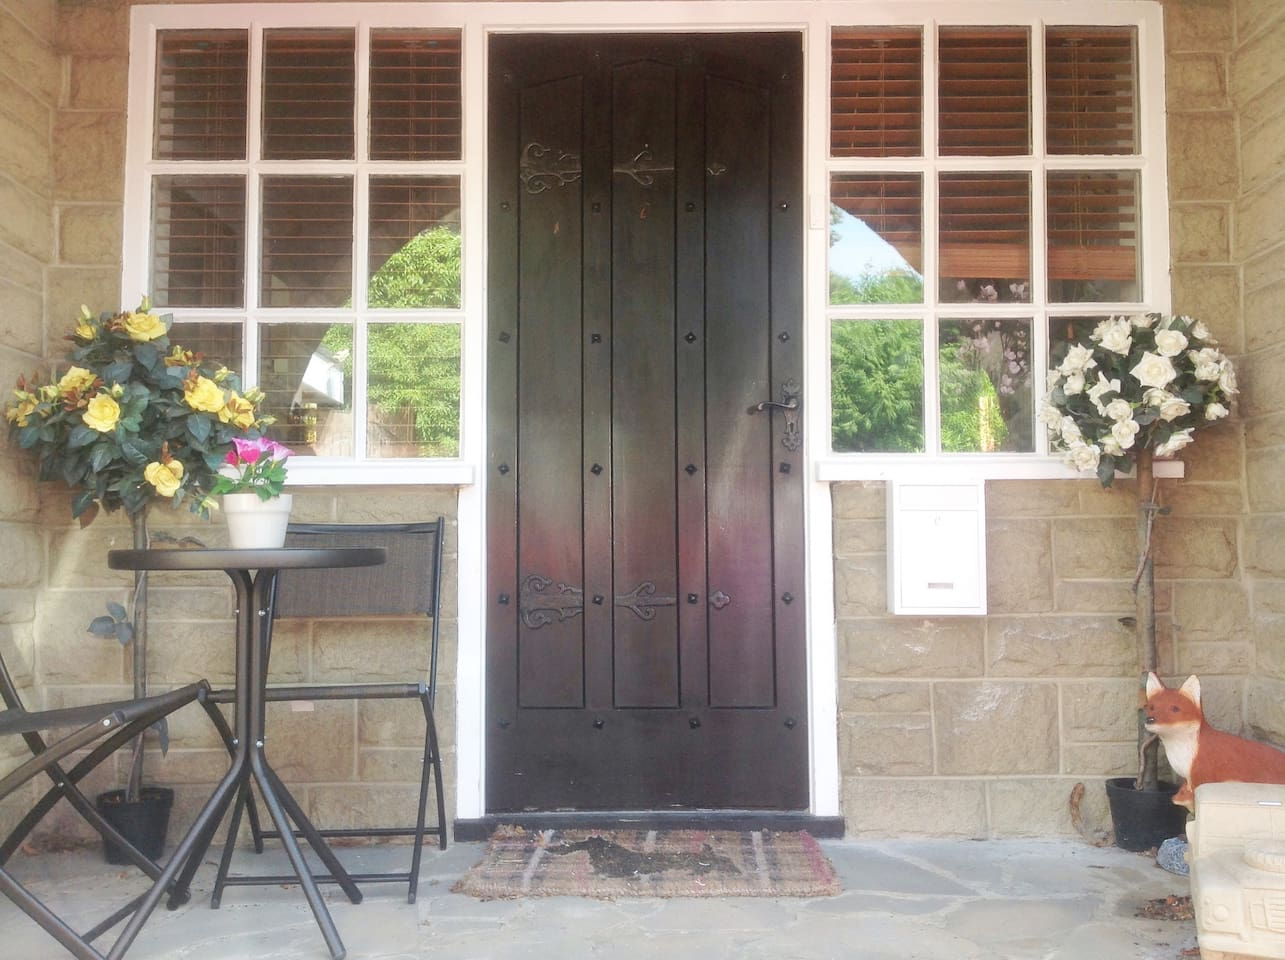 Private entrance porch and door with al fresco dining.  You can come and go as you please.  The porch is a real sun trap in the evening if you fancied a takeaway!